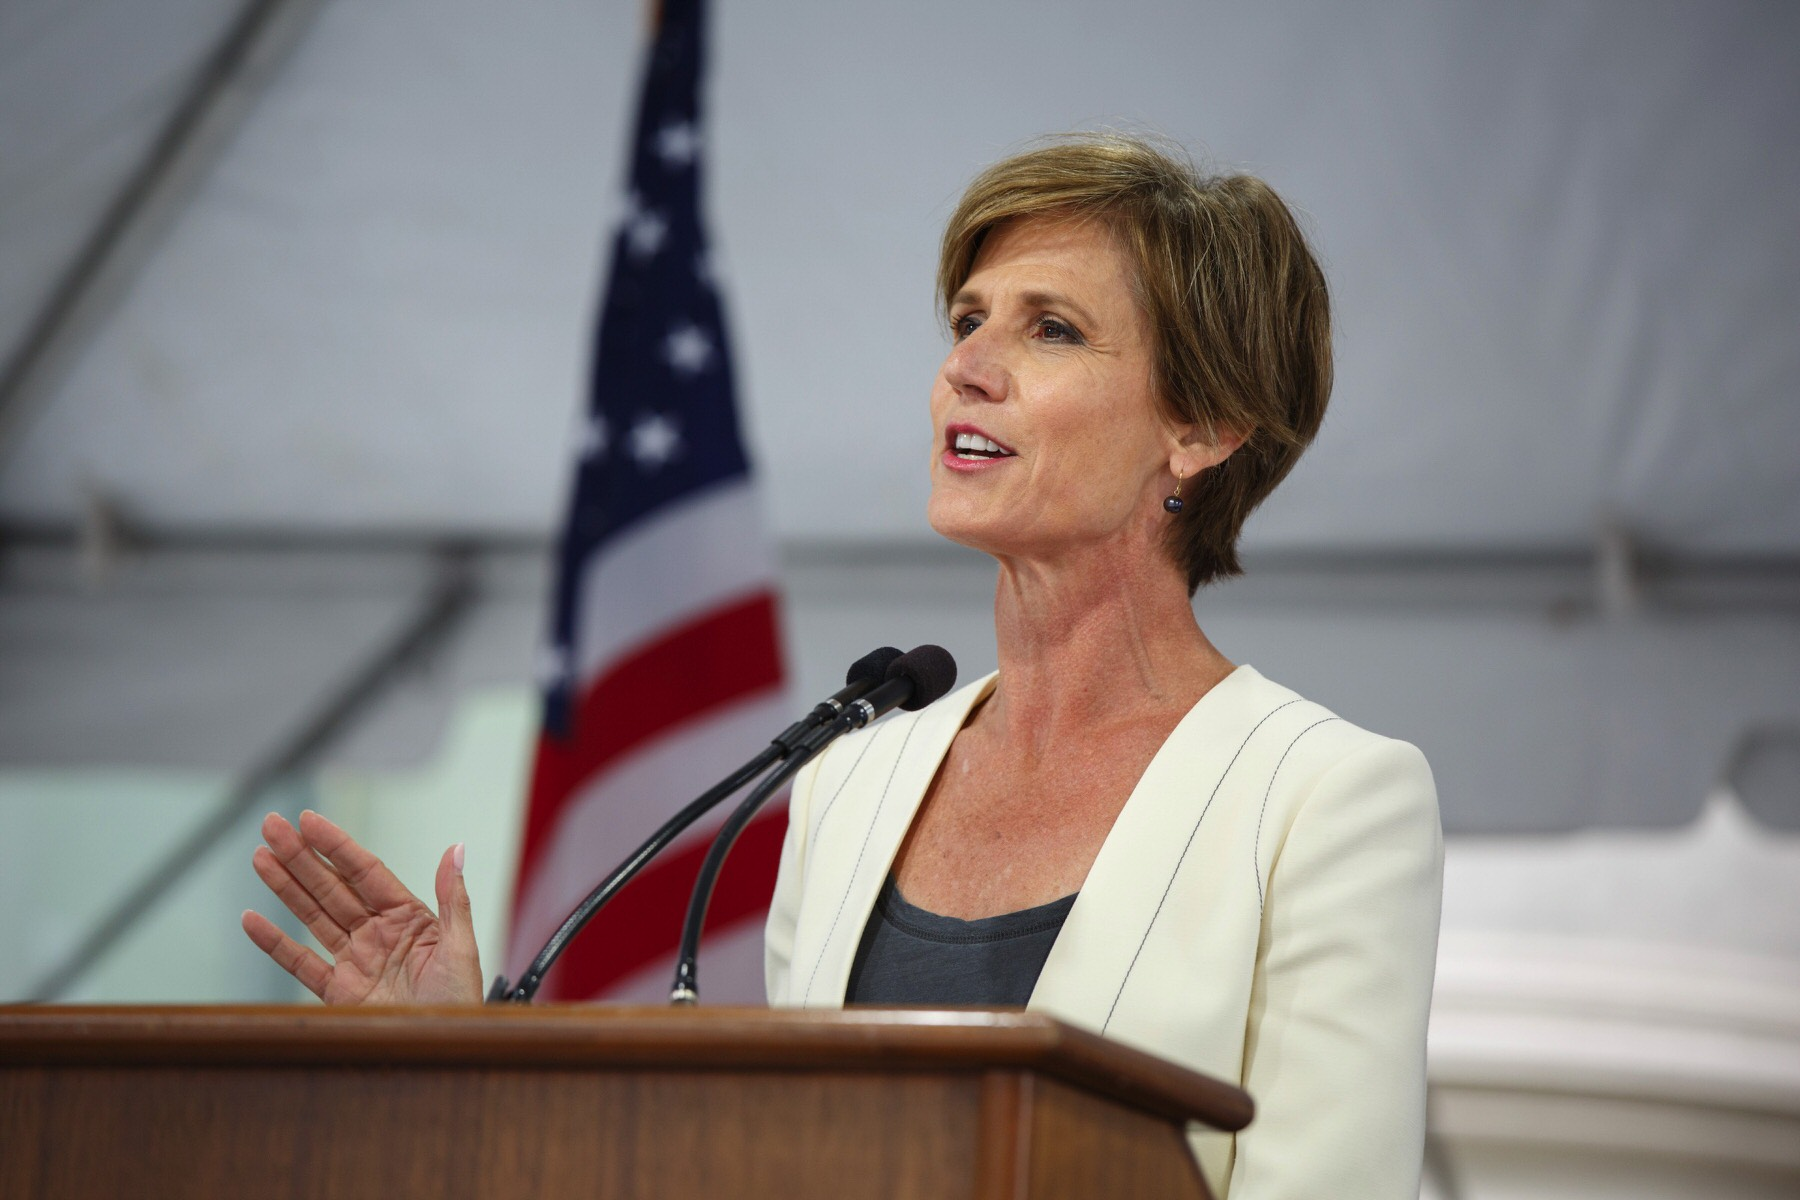 Sally Yates Explains Why She Defied Trump On The Travel Ban